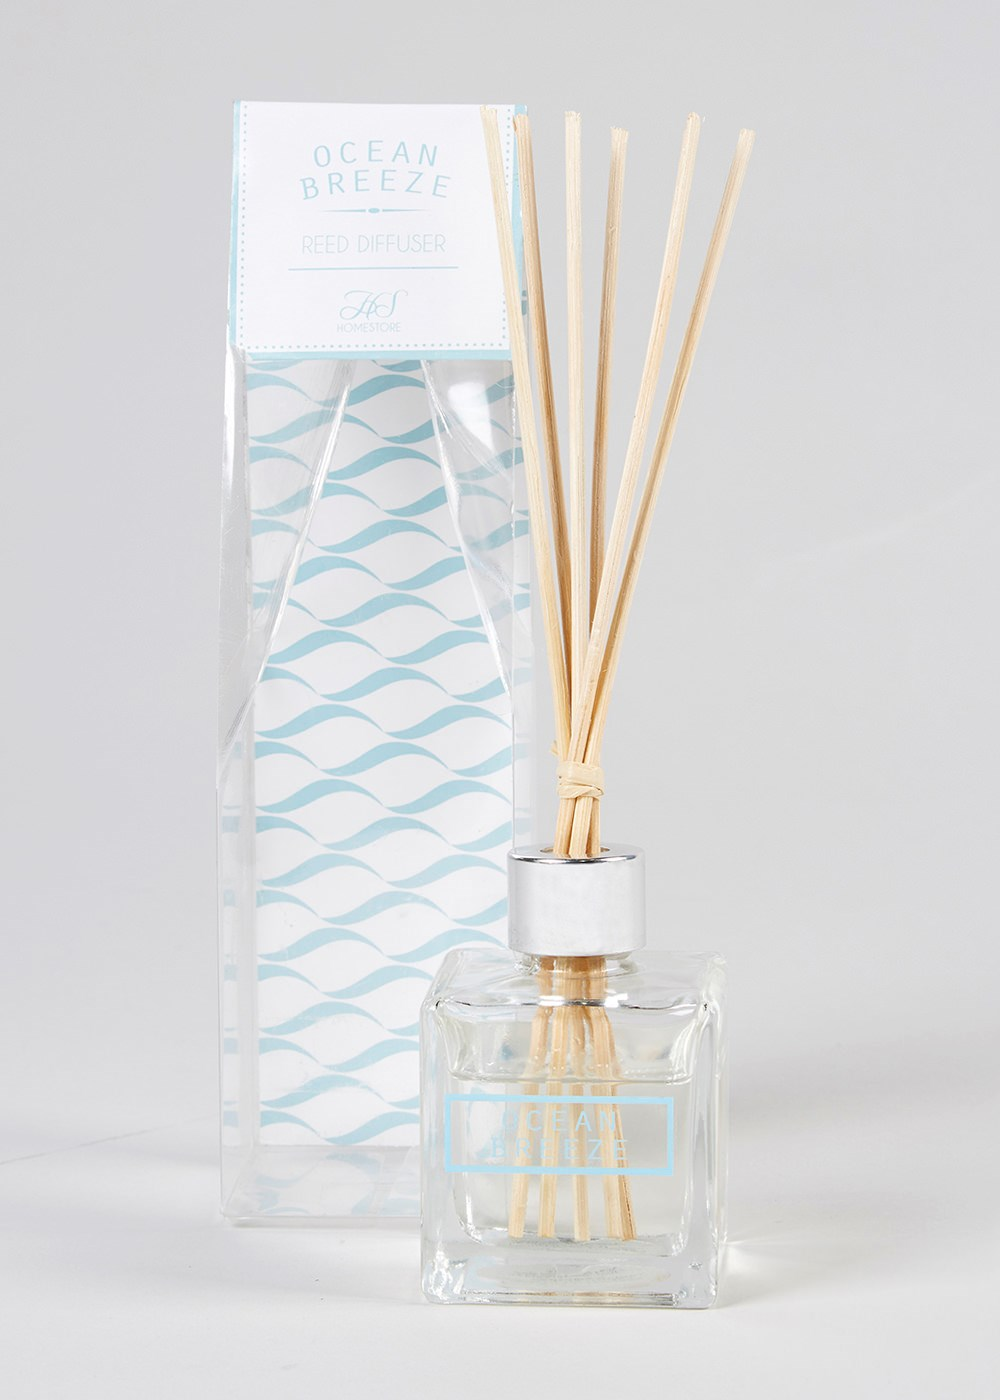 Ocean breeze reed diffuser and fragrance - make your home smell like the ocean